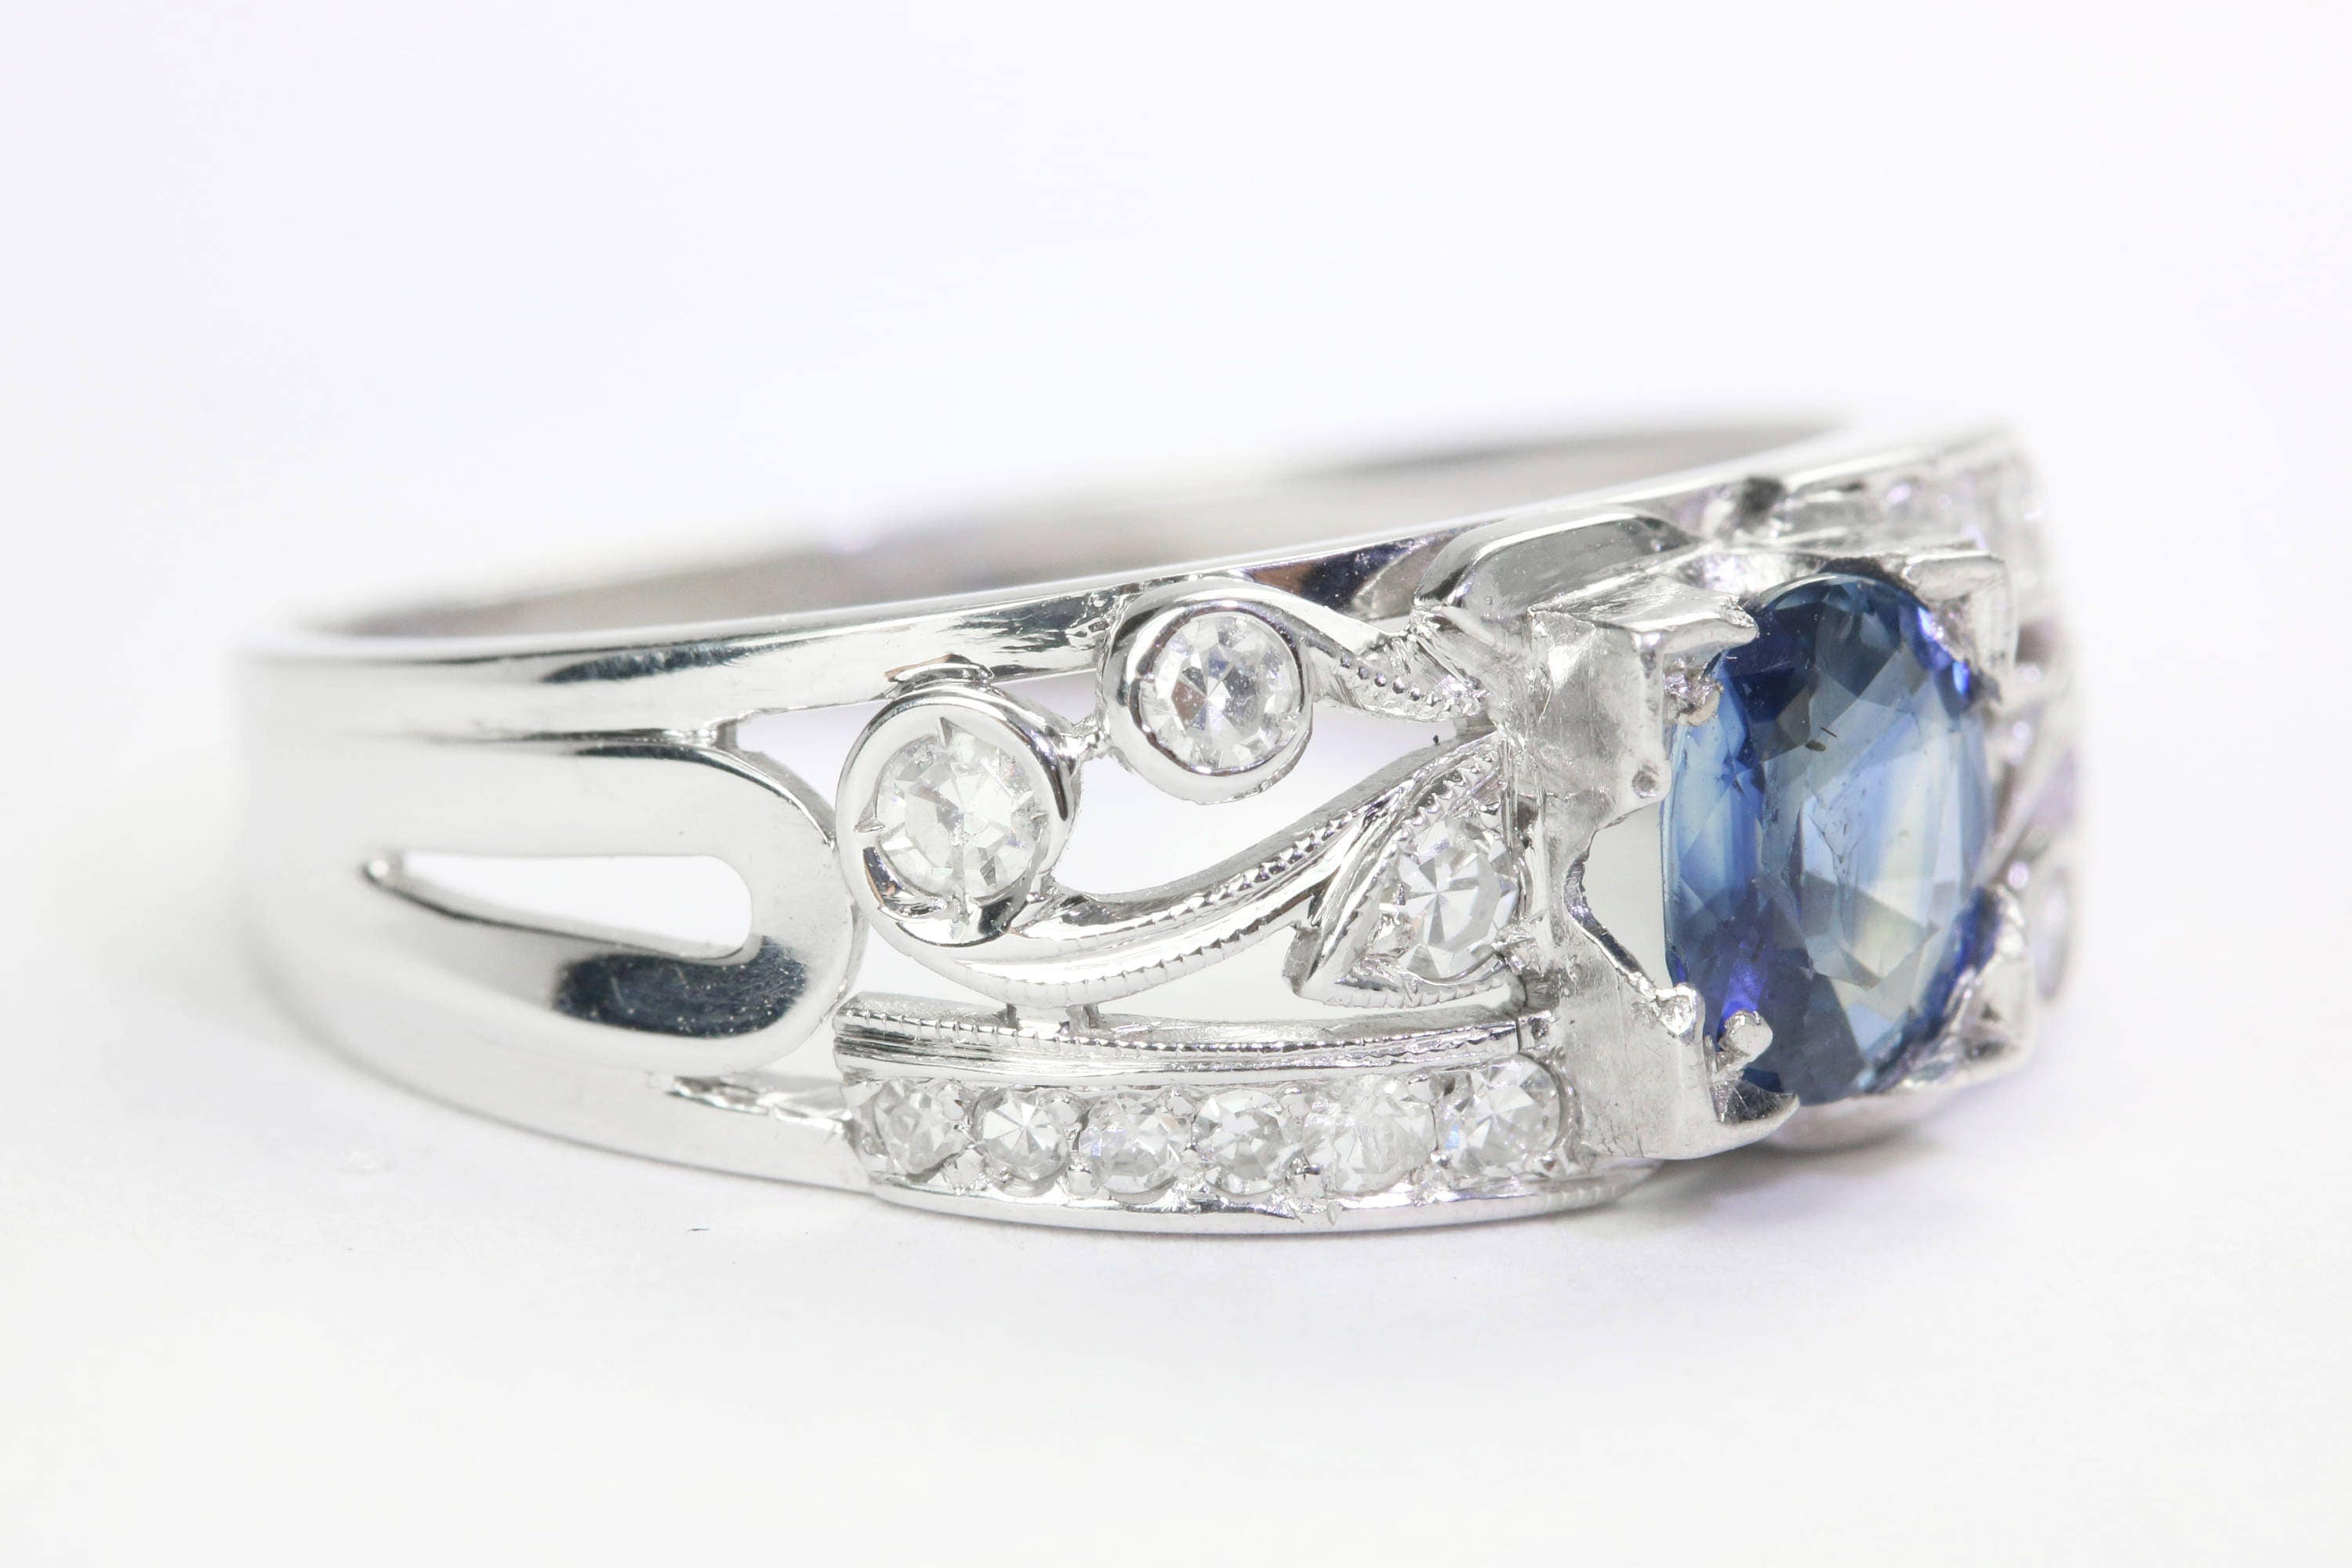 products solitaire b the infinity proposal diamond in gold white ring jewellerists sapphire wedding